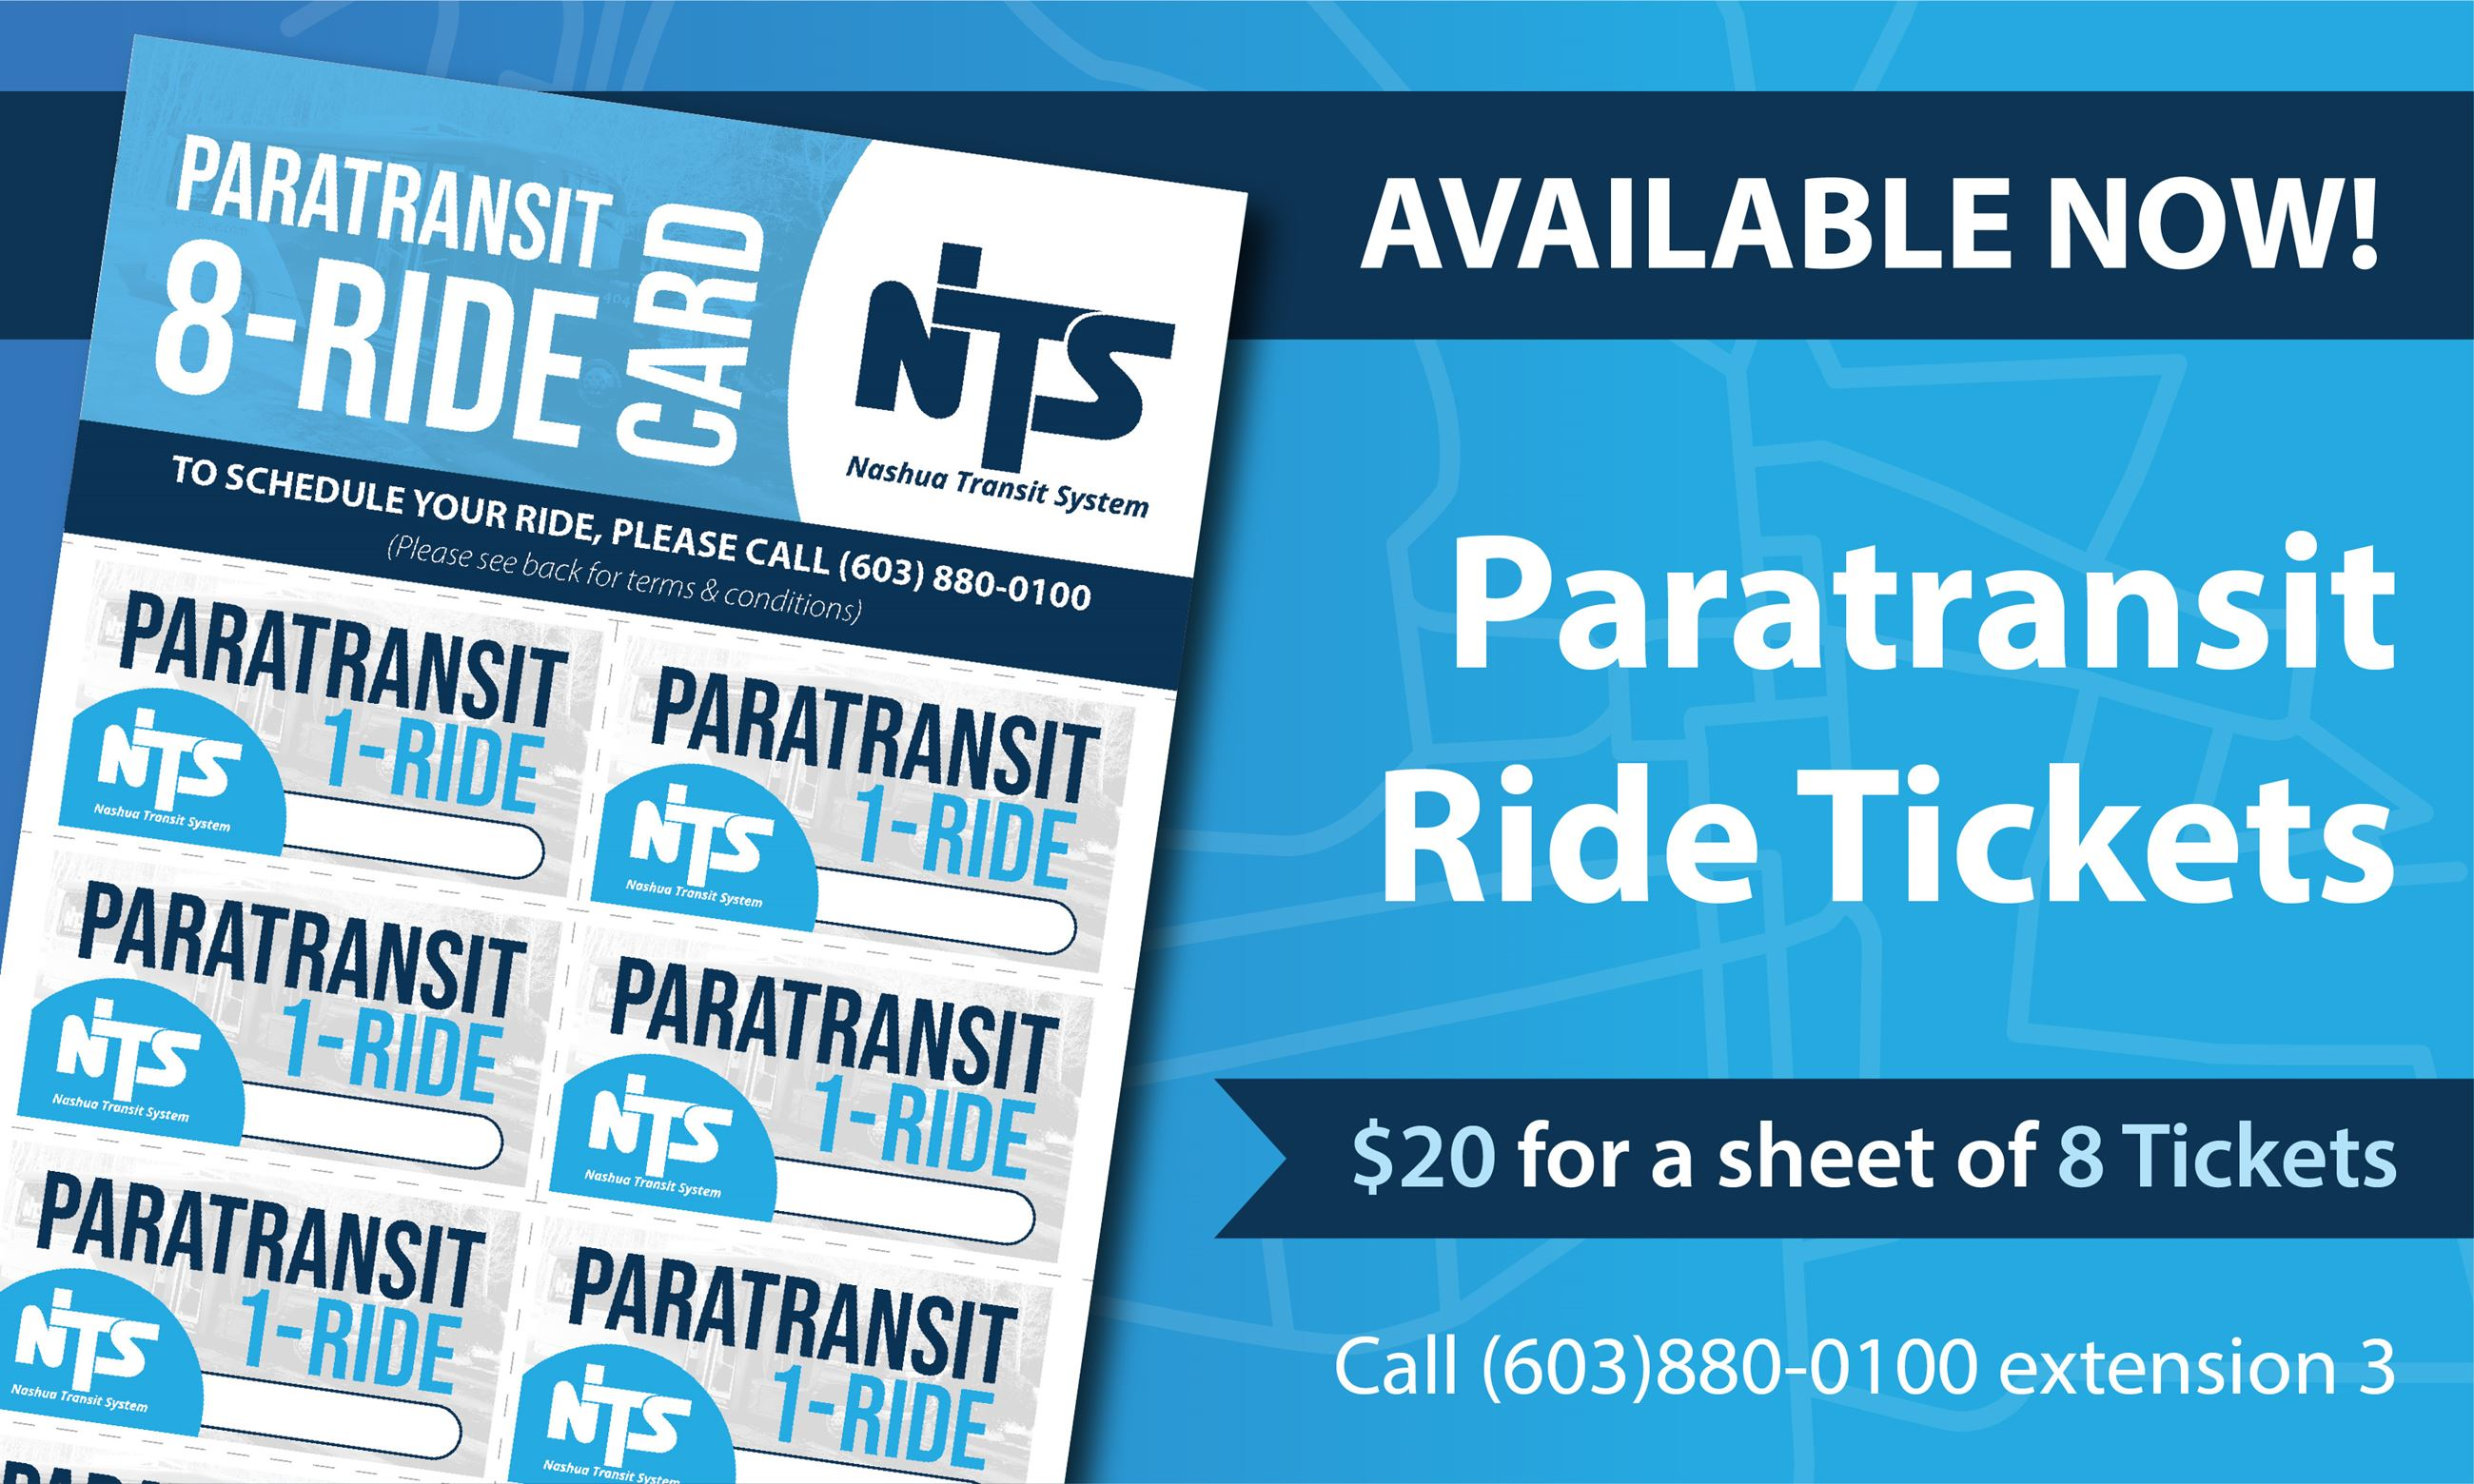 Paratransit Tickets now available in sheets of 8 for $20! Call (603)880-0100 extension 3